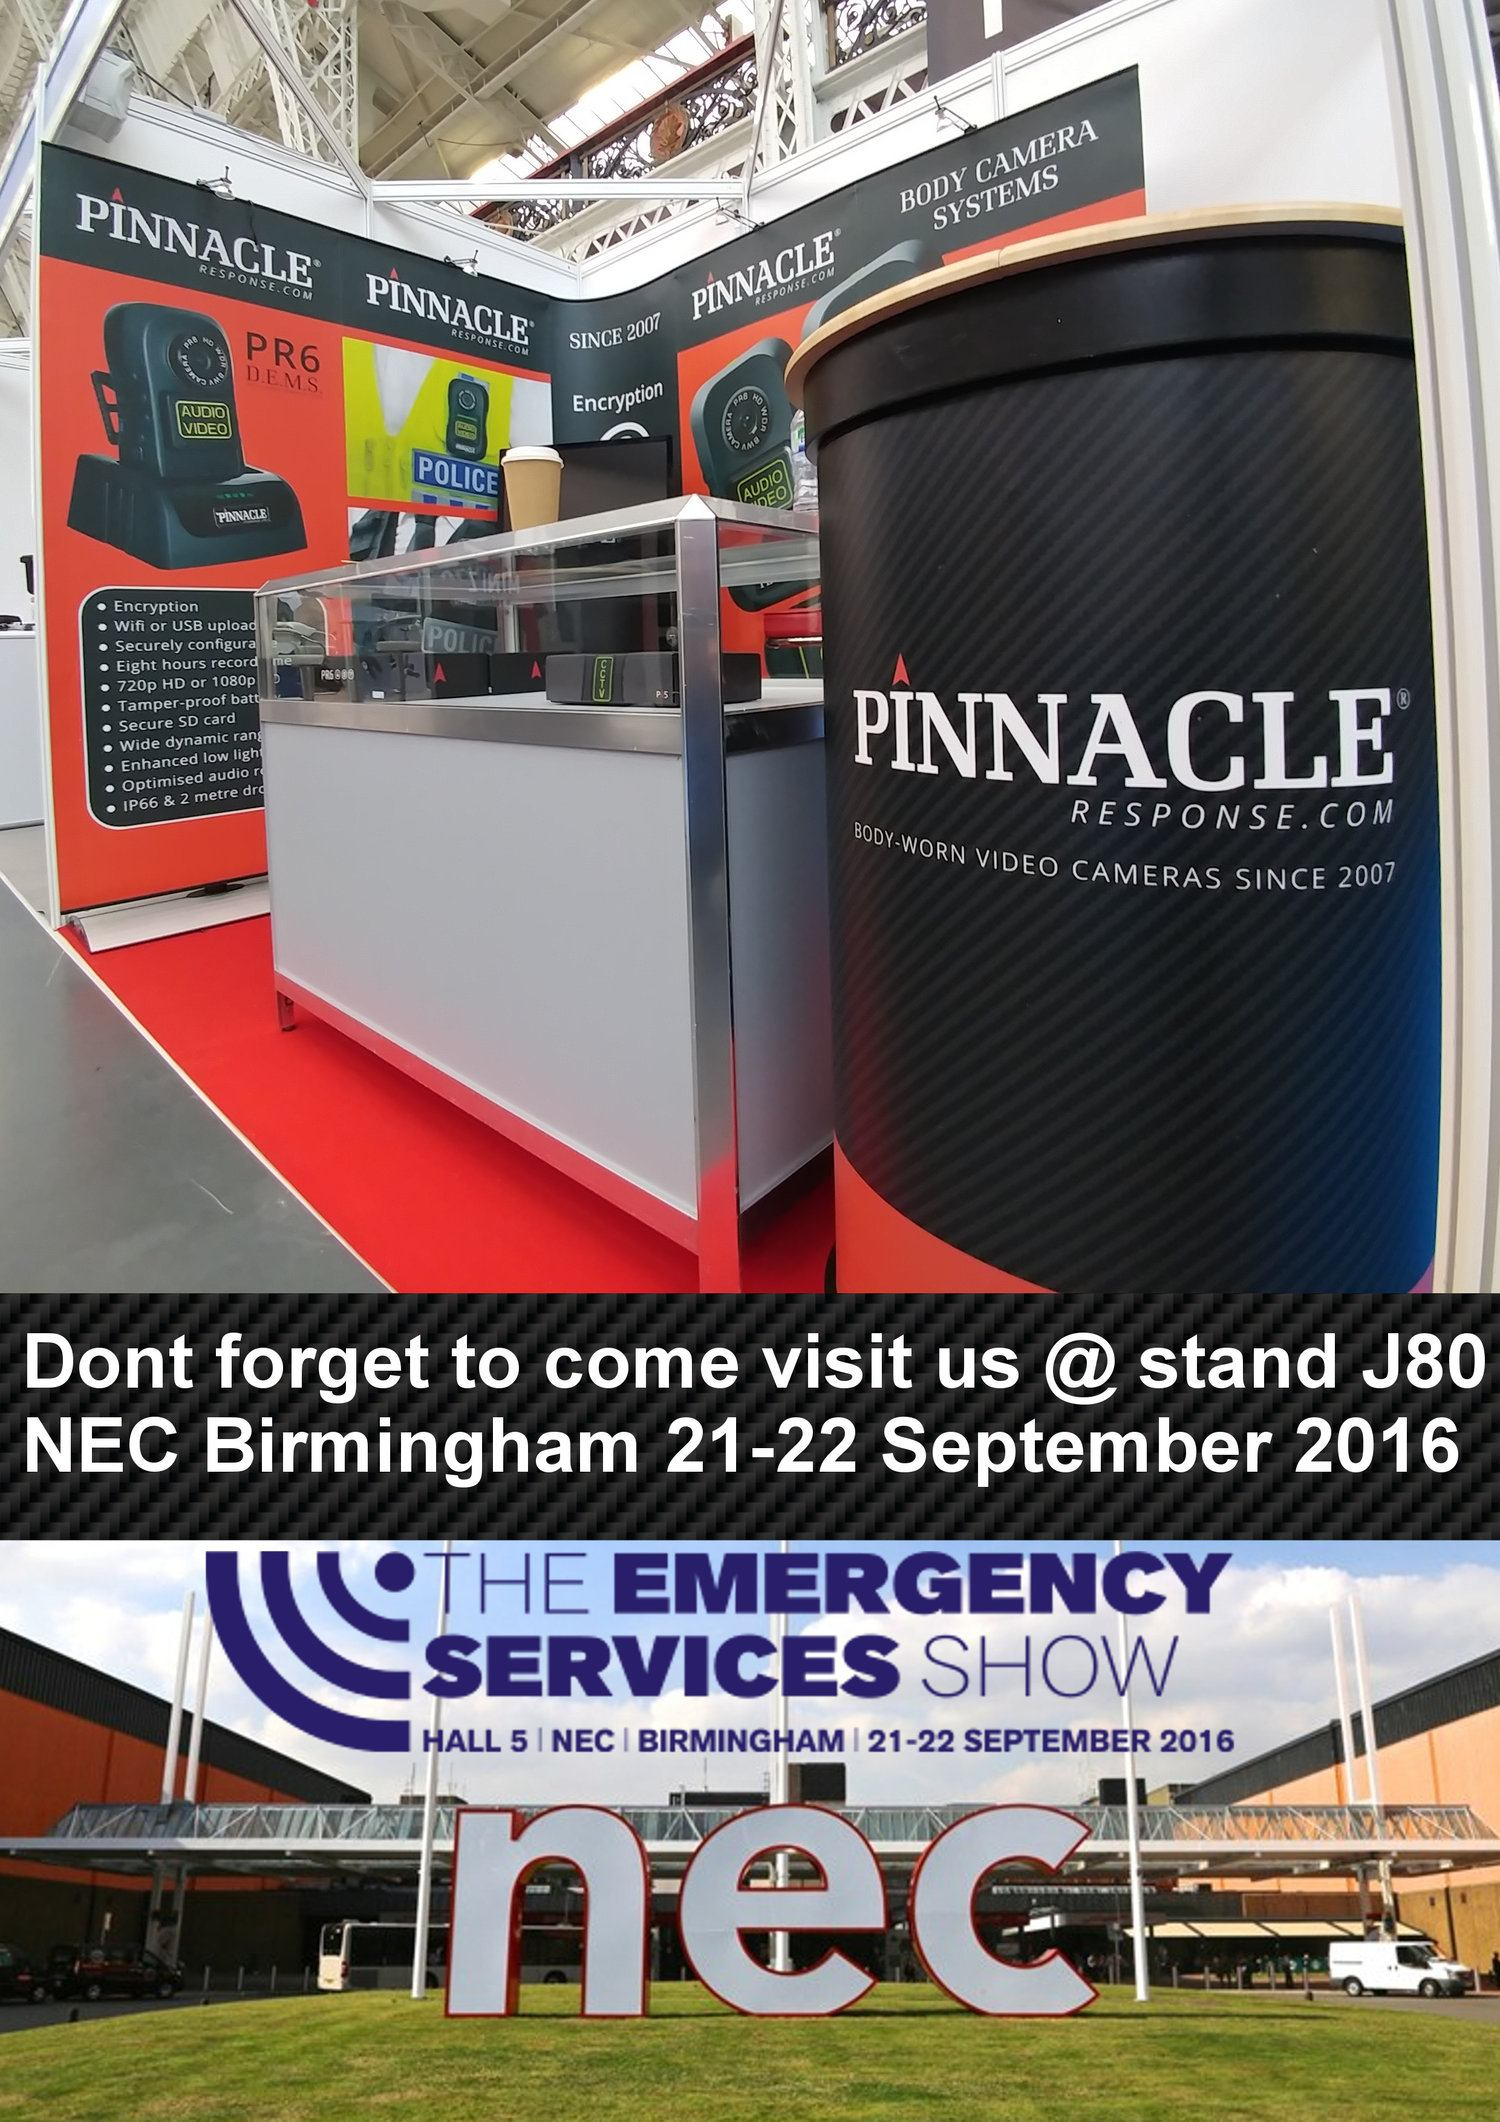 Emergency Services Show - Come see us!!